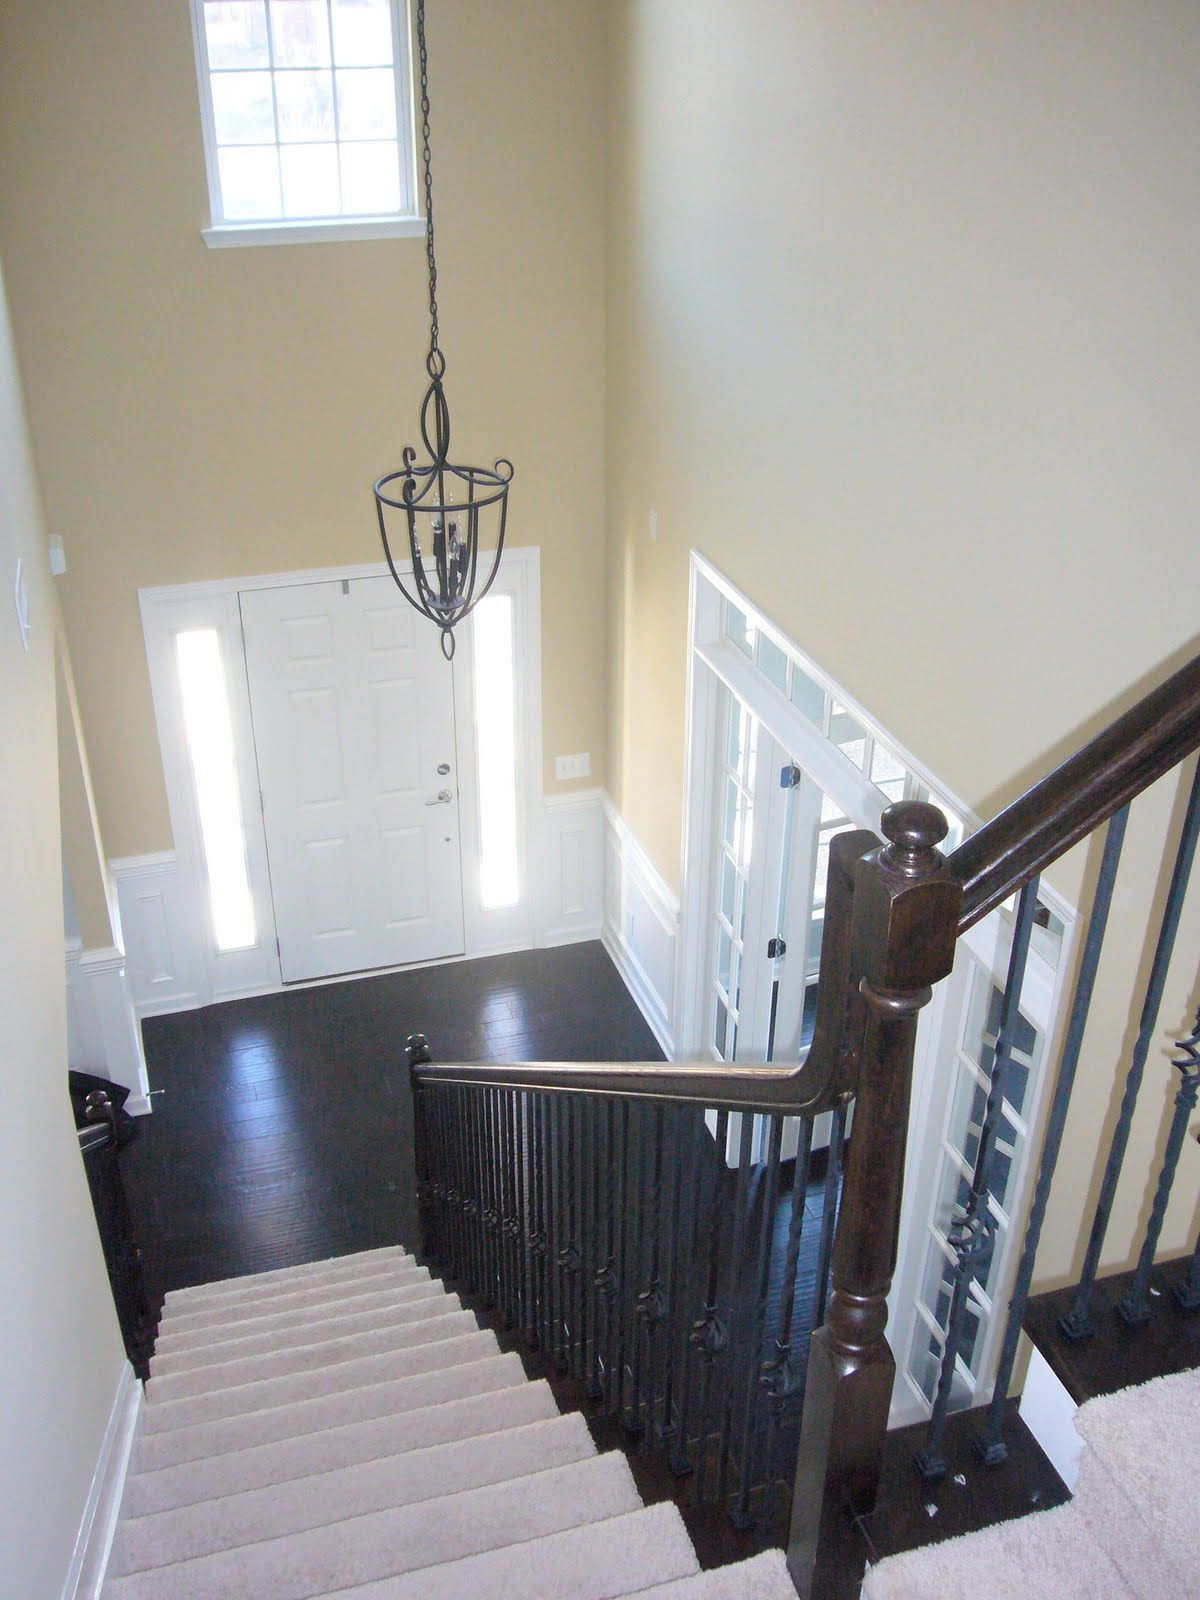 Innovative What Should I Paint Next My Client Nc What Color Should I Paint My Decorating By Donna Color Expert What Should I Paint A houzz 01 What Should I Paint